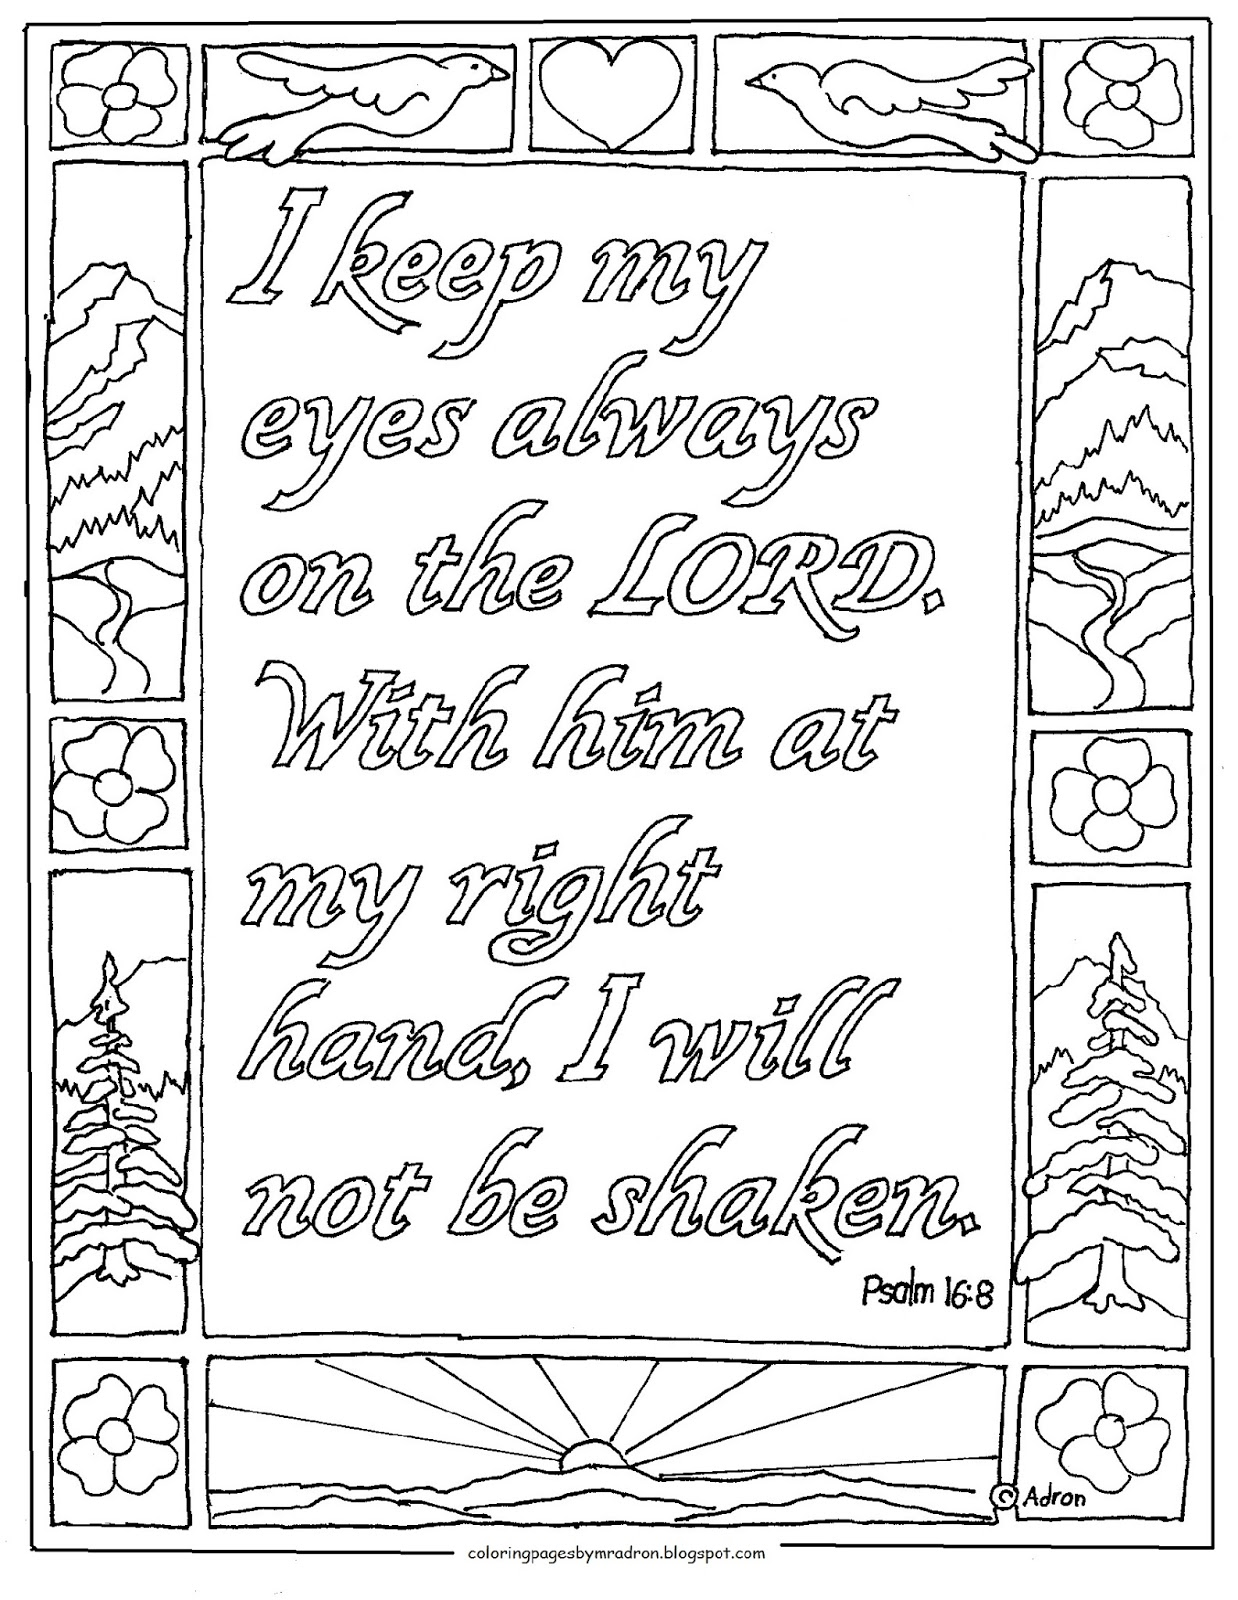 Coloring Pages for Kids by Mr. Adron: Psalm 16:8 Printable